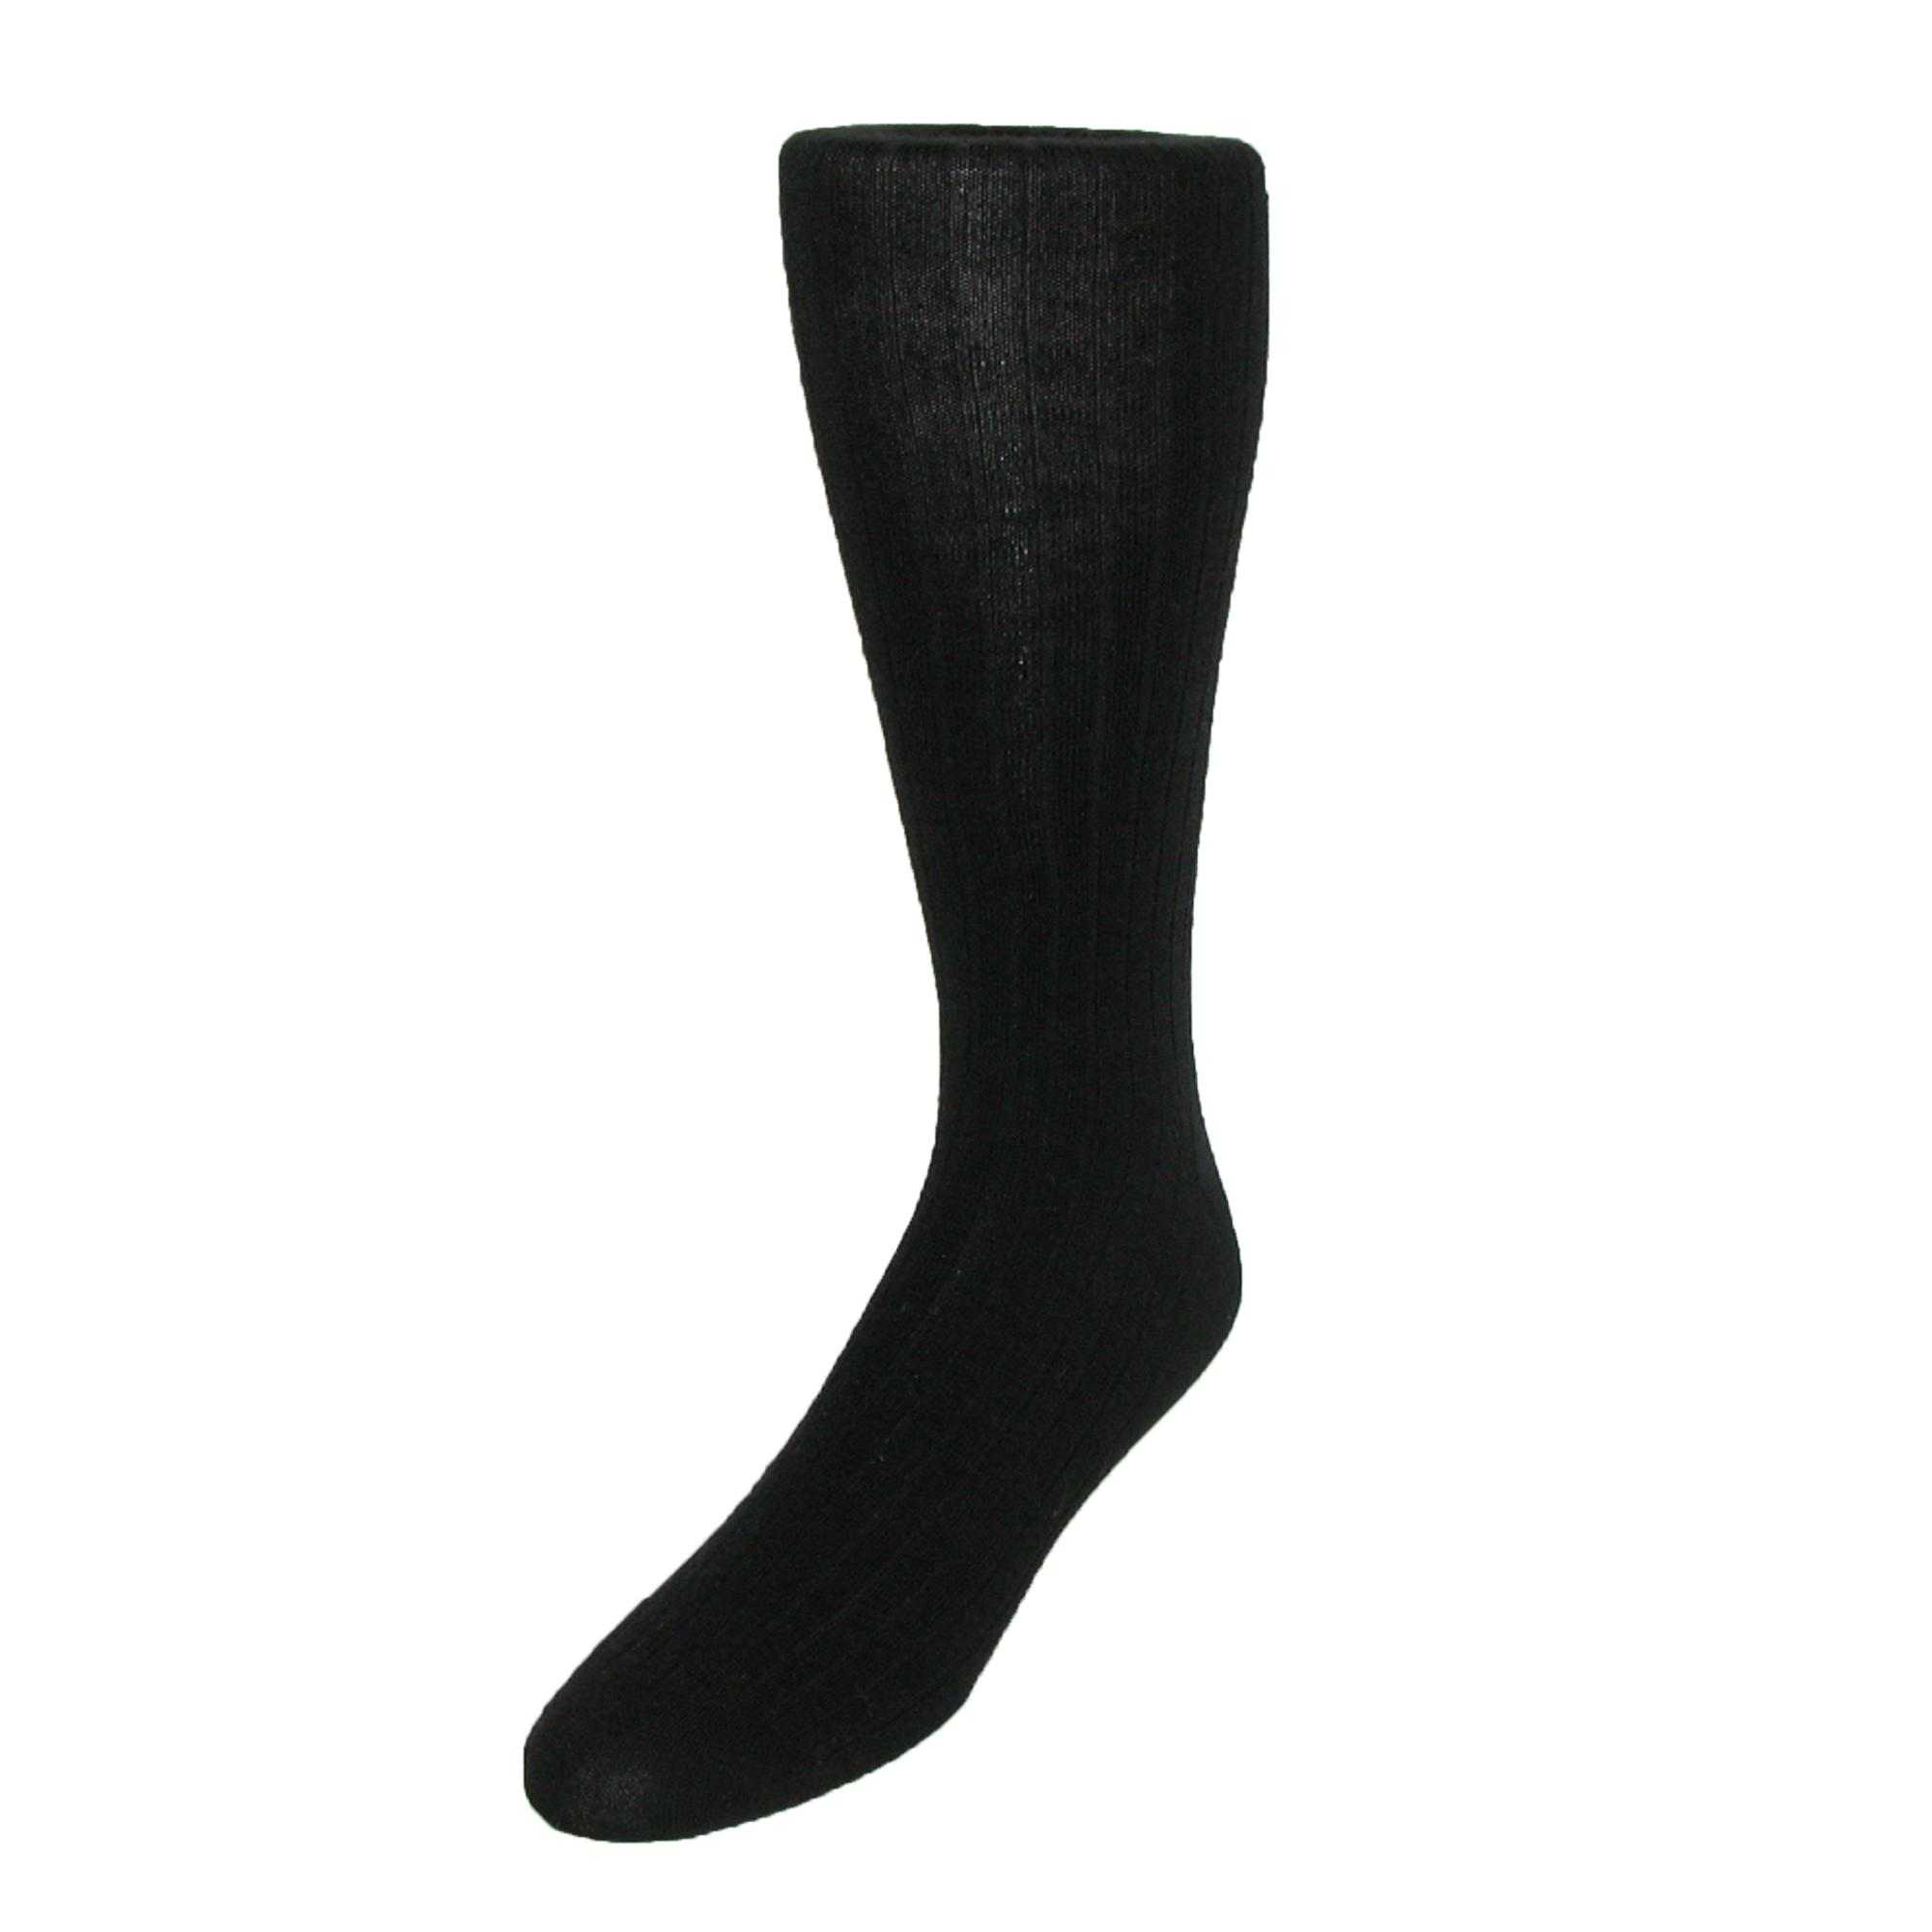 Windsor_Collection_Mens_Merino_Wool_Over_the_Calf_Dress_Socks_